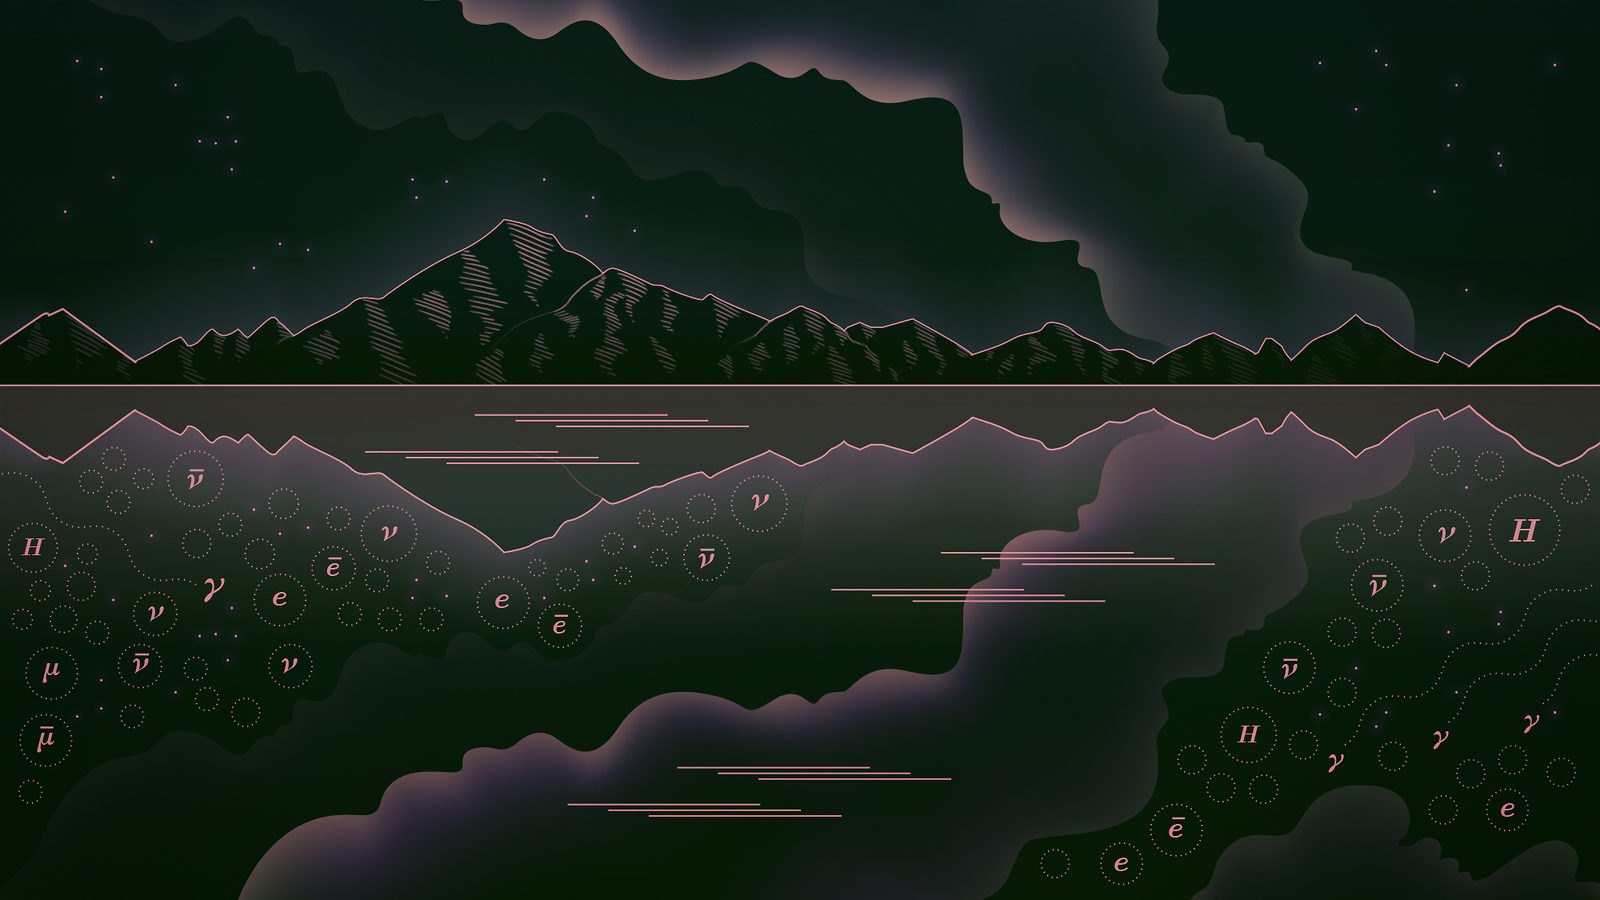 Illustration of black and pink mountains with smoke over lake with mirror reflection